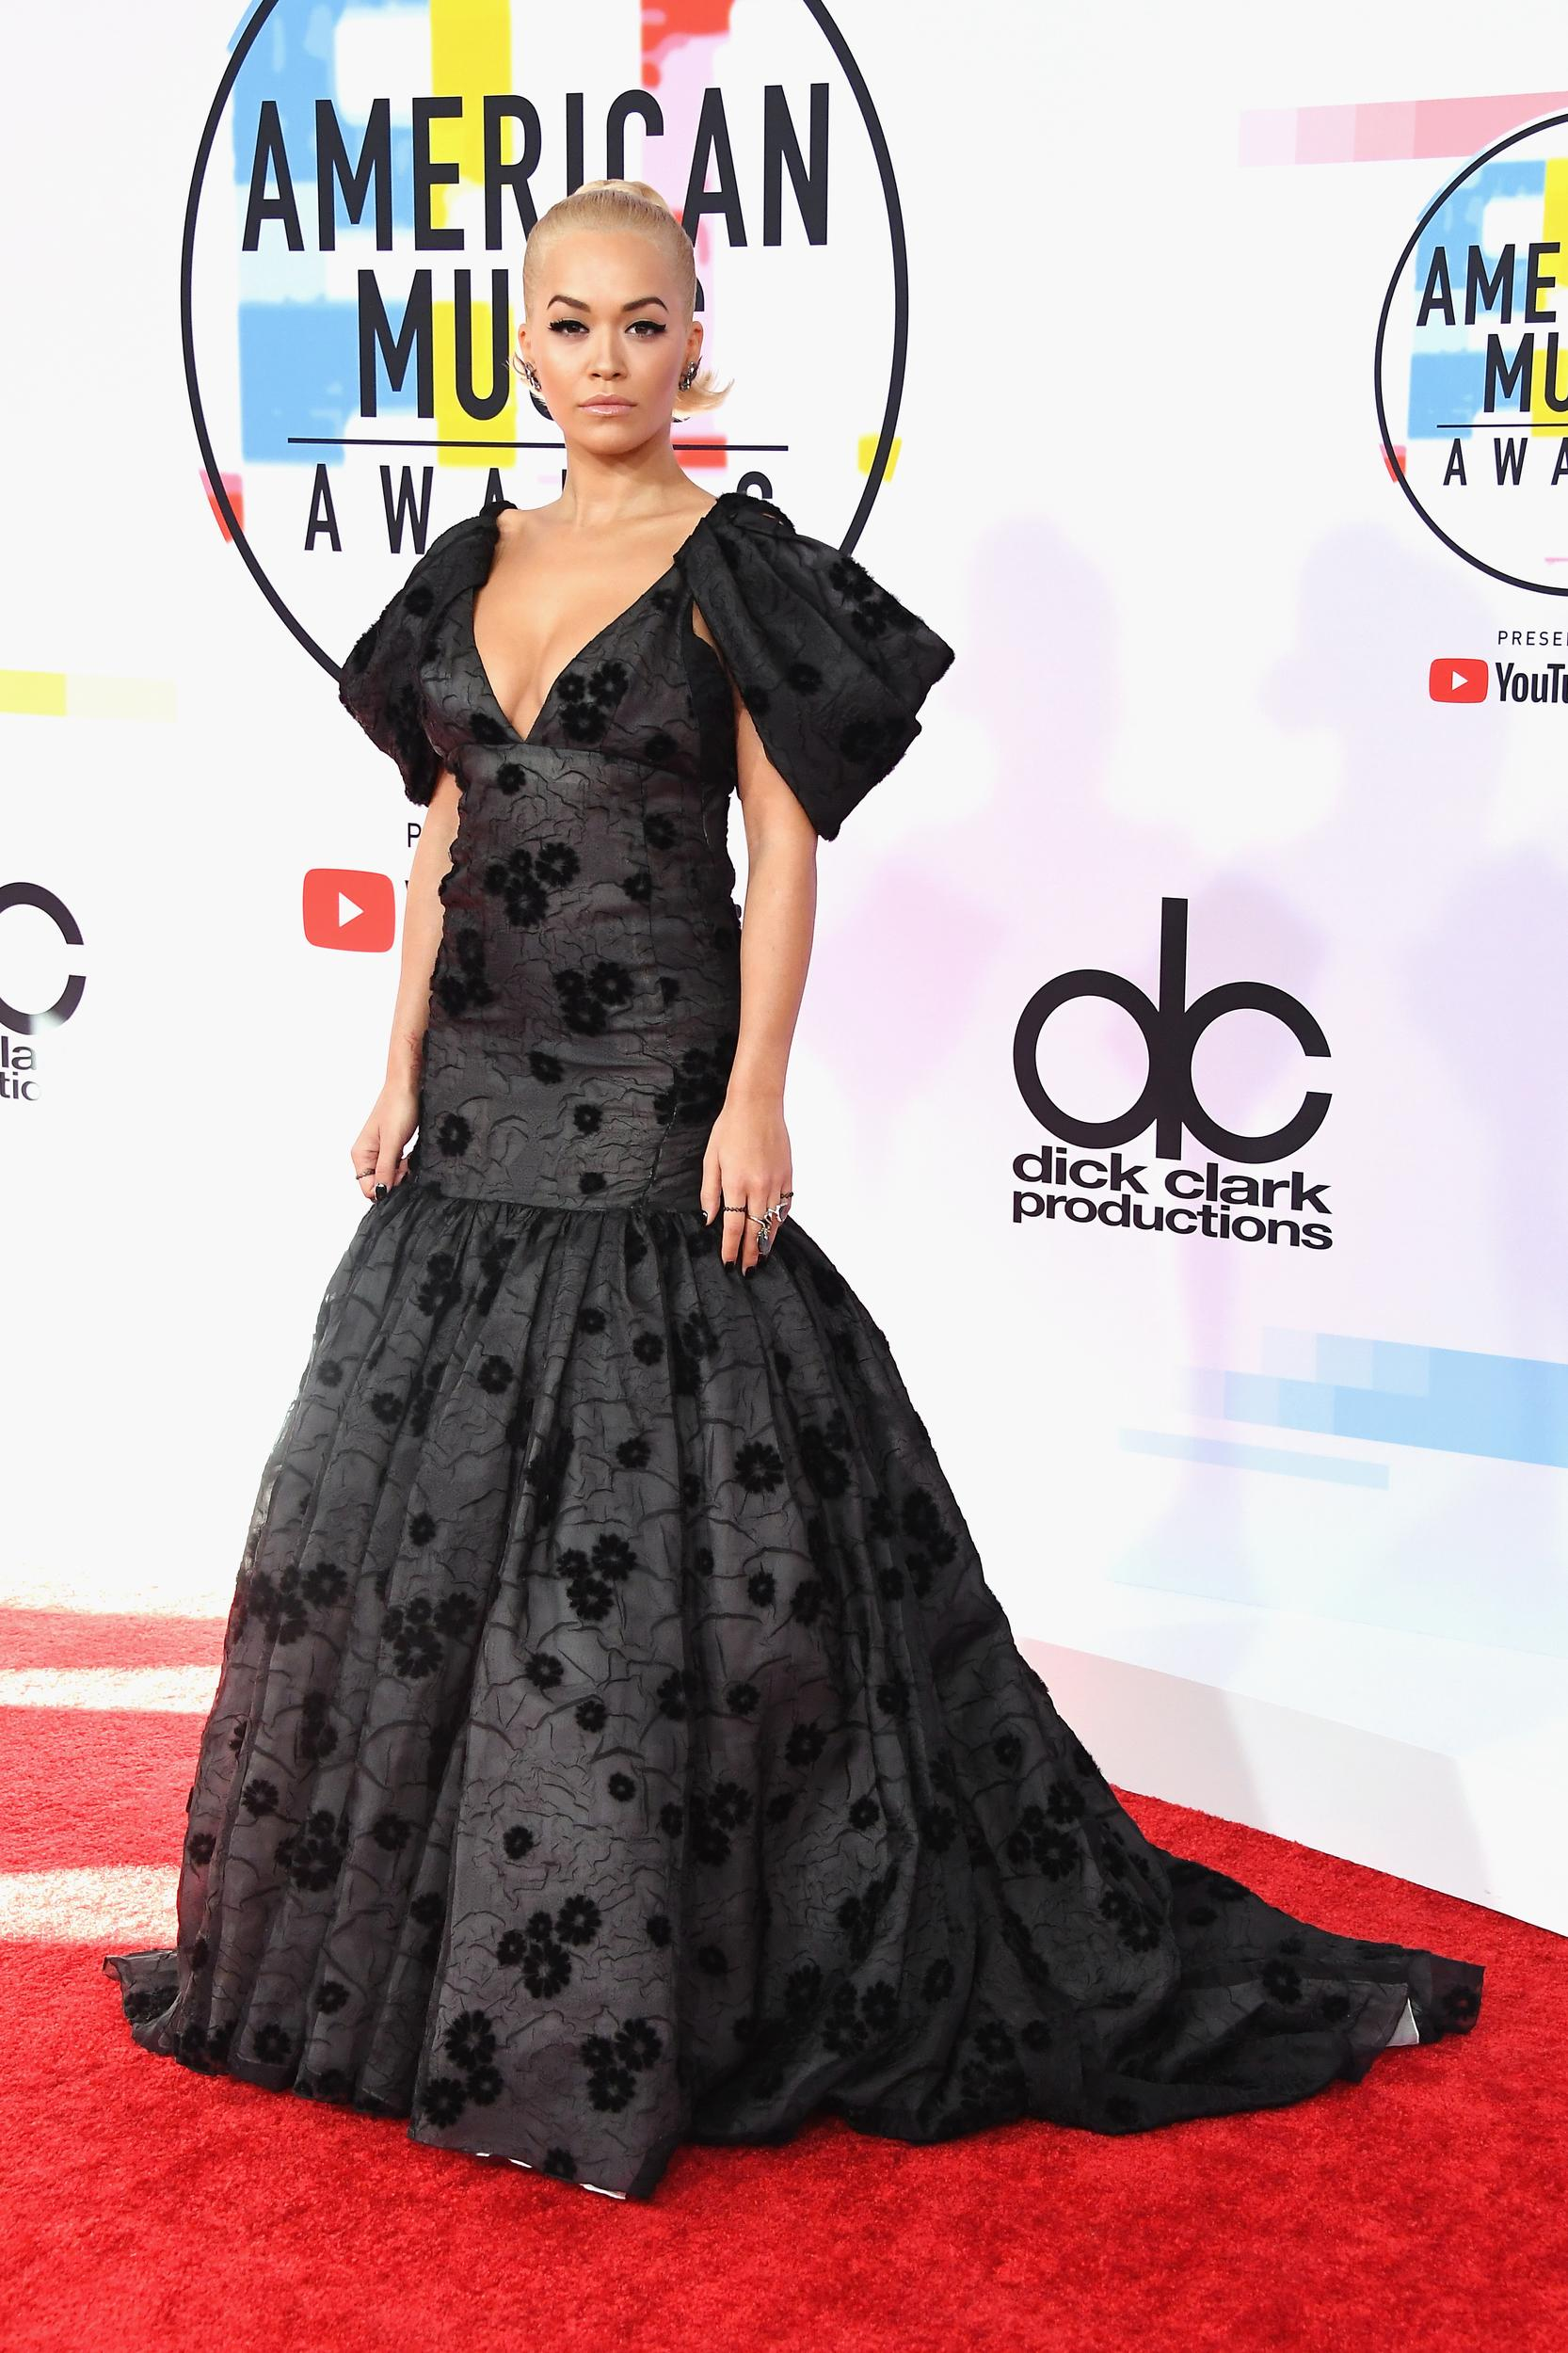 LOS ANGELES, CA - OCTOBER 09:  Rita Ora attends the 2018 American Music Awards at Microsoft Theater on October 9, 2018 in Los Angeles, California.  (Photo by Steve Granitz/WireImage)